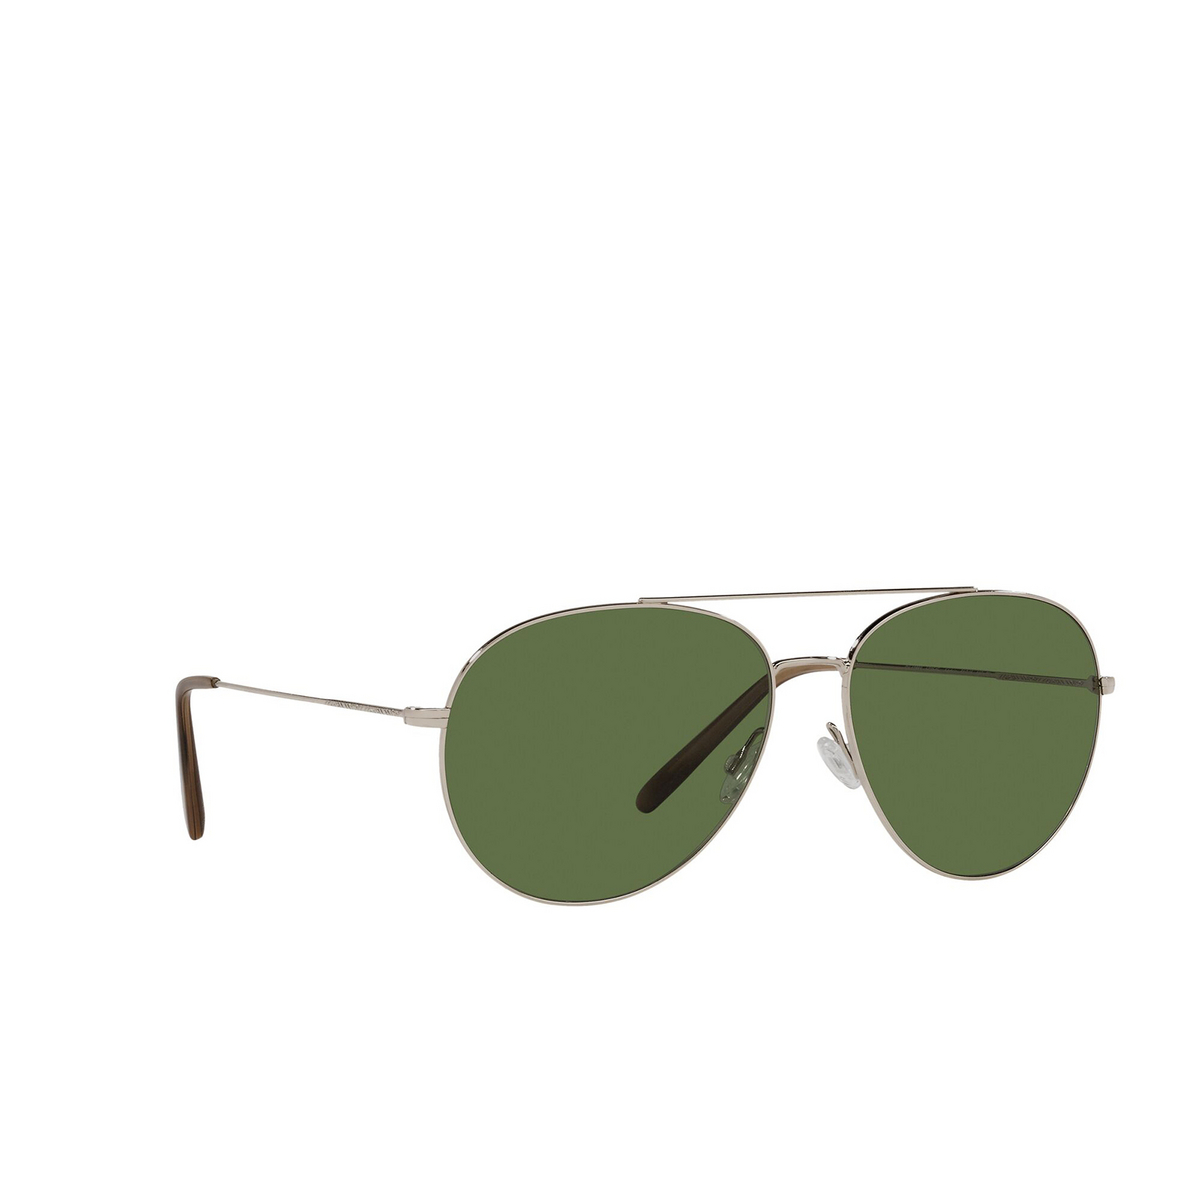 Oliver Peoples® Aviator Sunglasses: Airdale OV1286S color Soft Gold 50354E - three-quarters view.